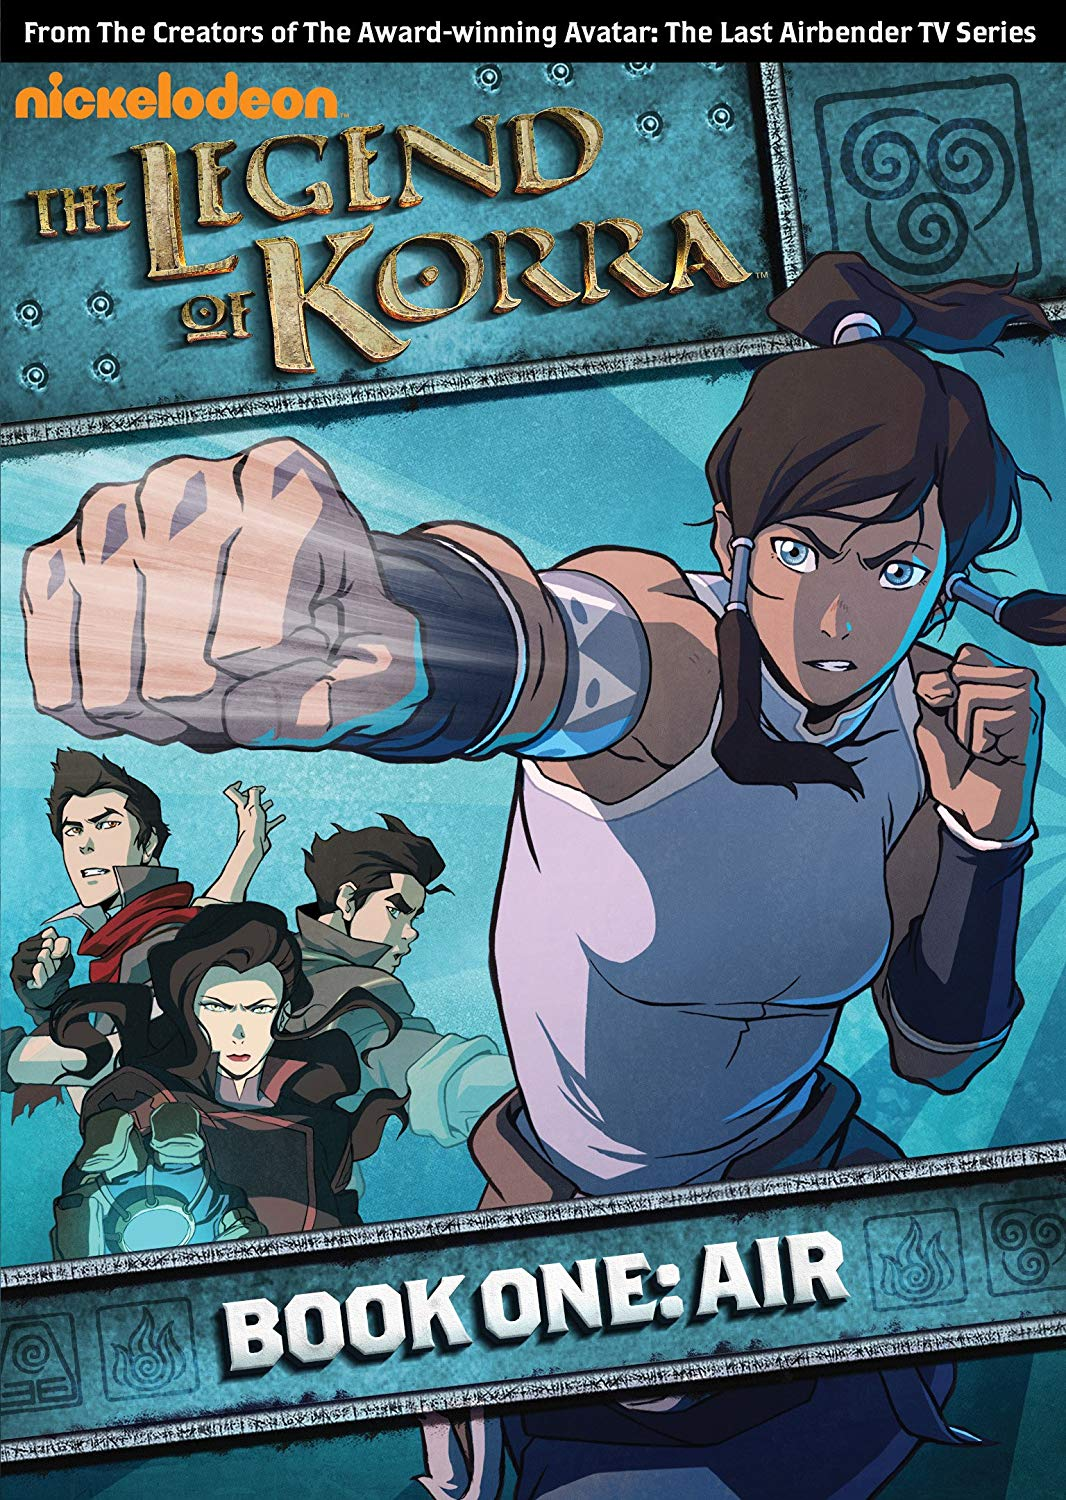 Tv Show cover: The Legend of Korra